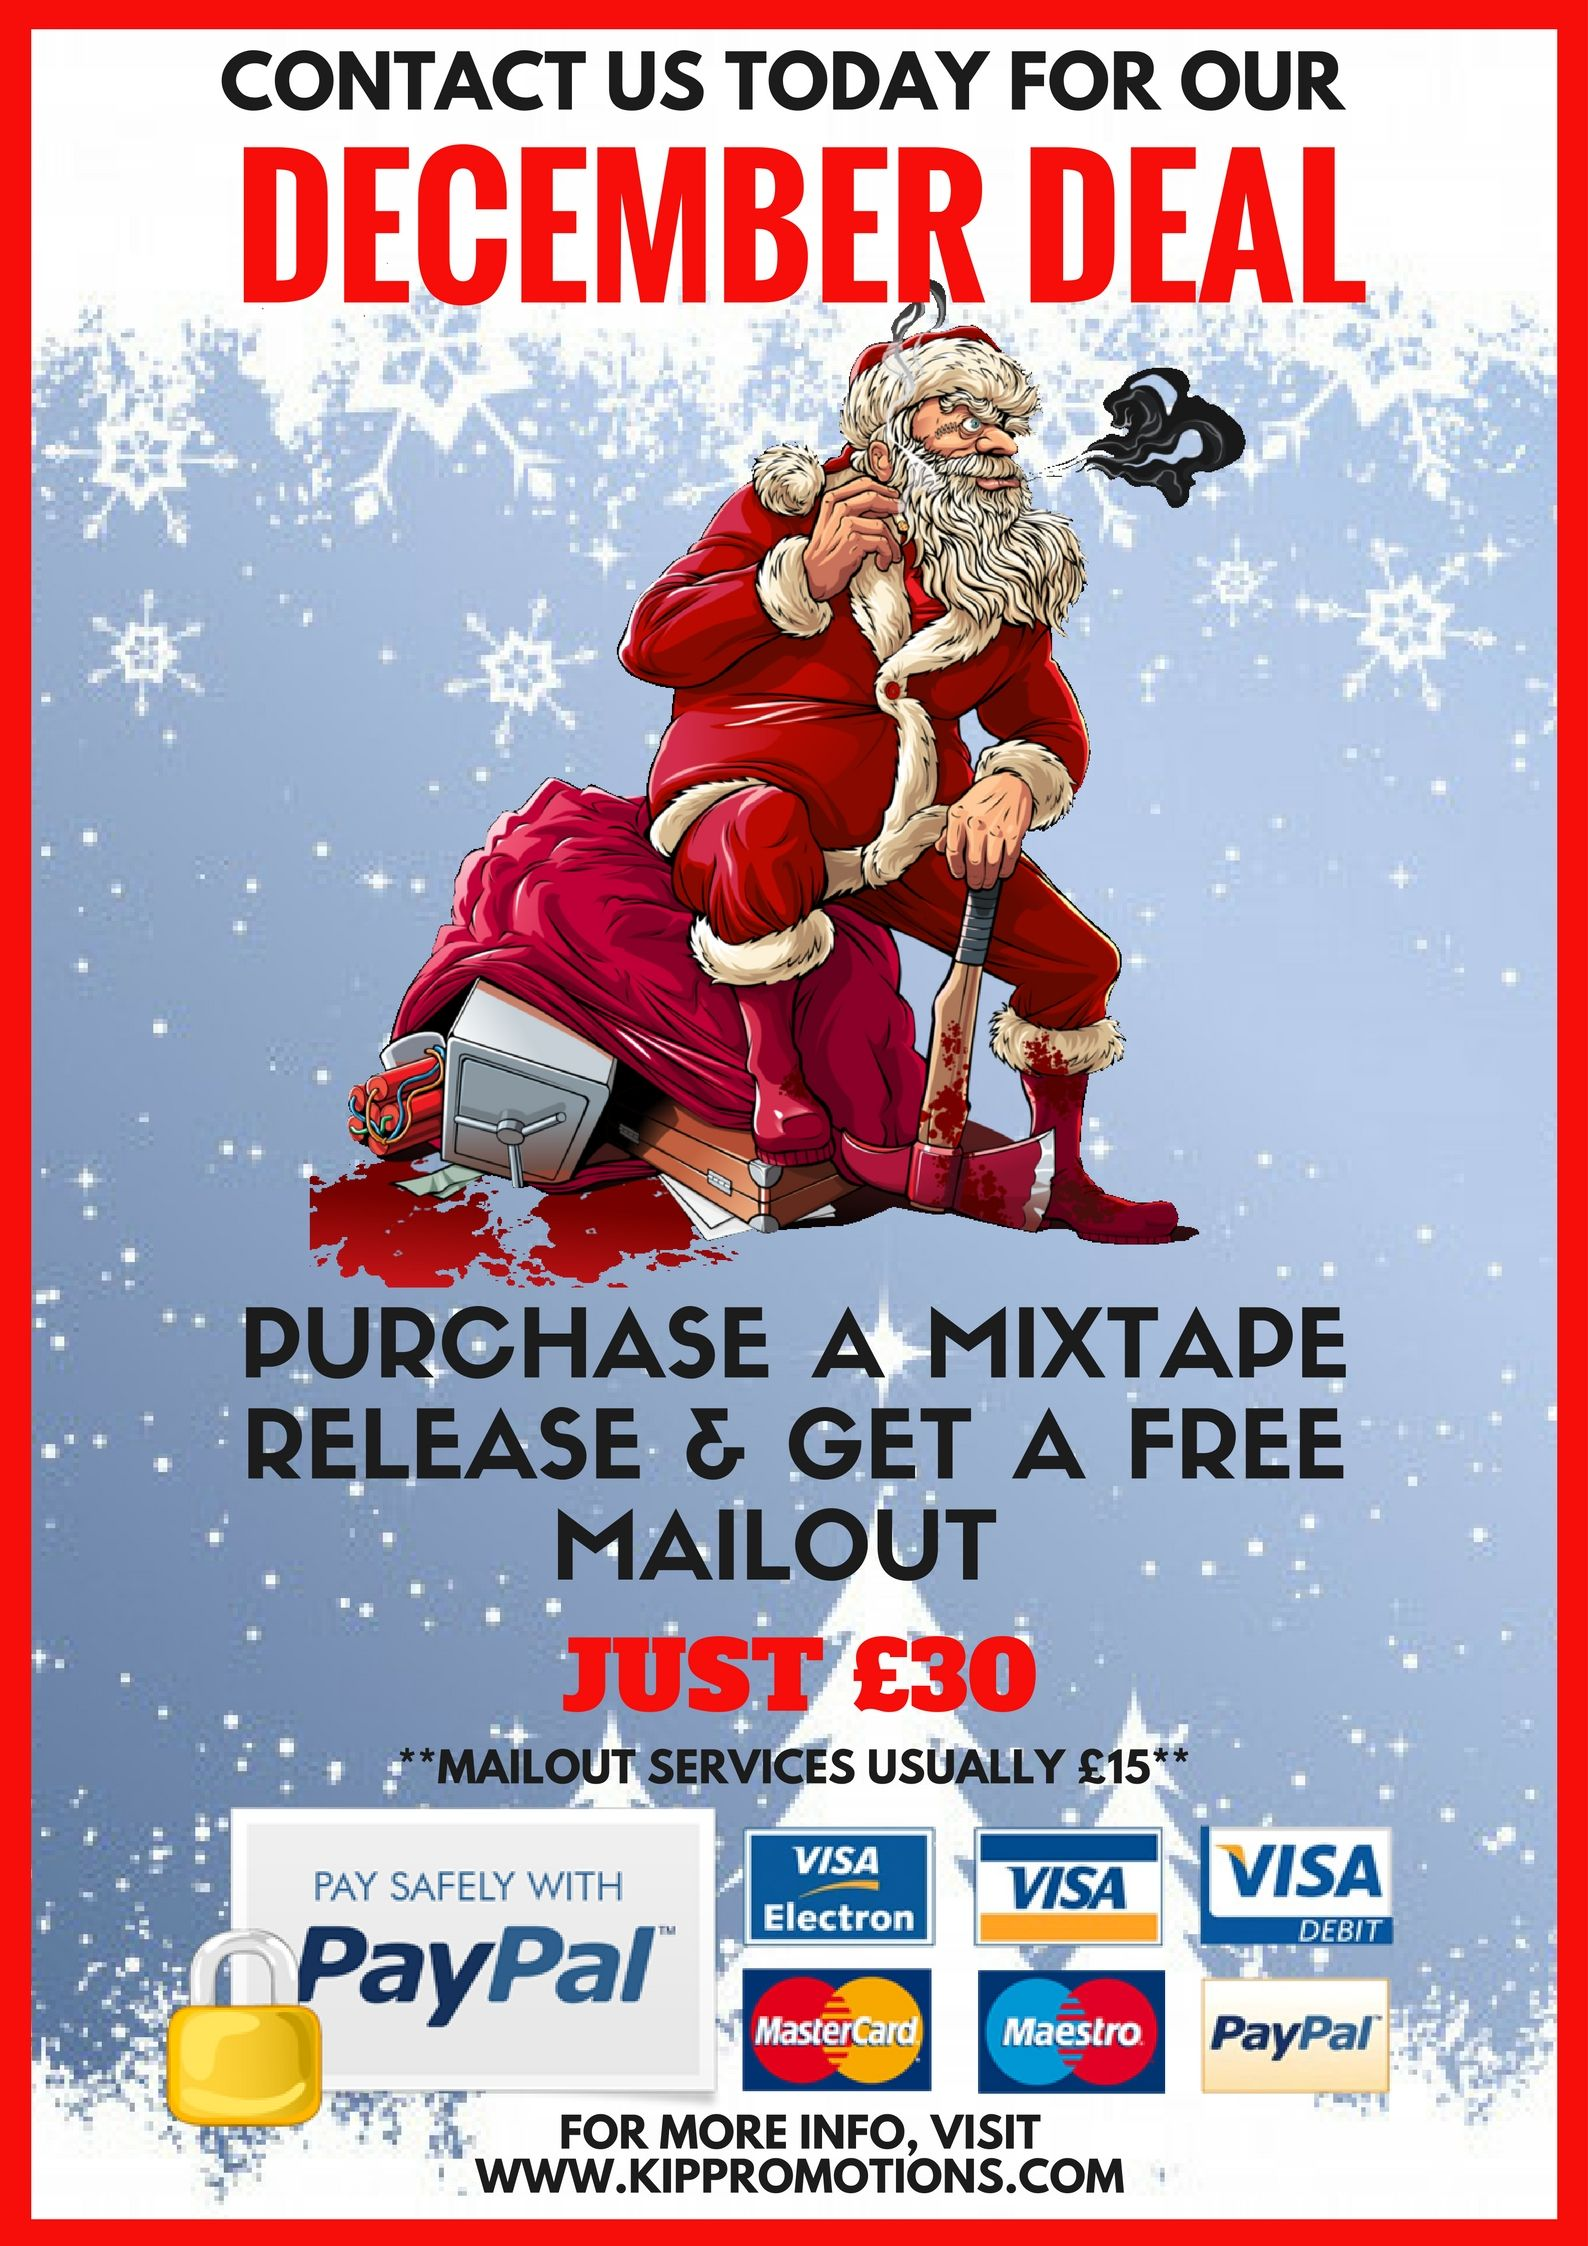 Deal Of The Month: Free Mailout With Every Mixtape Release